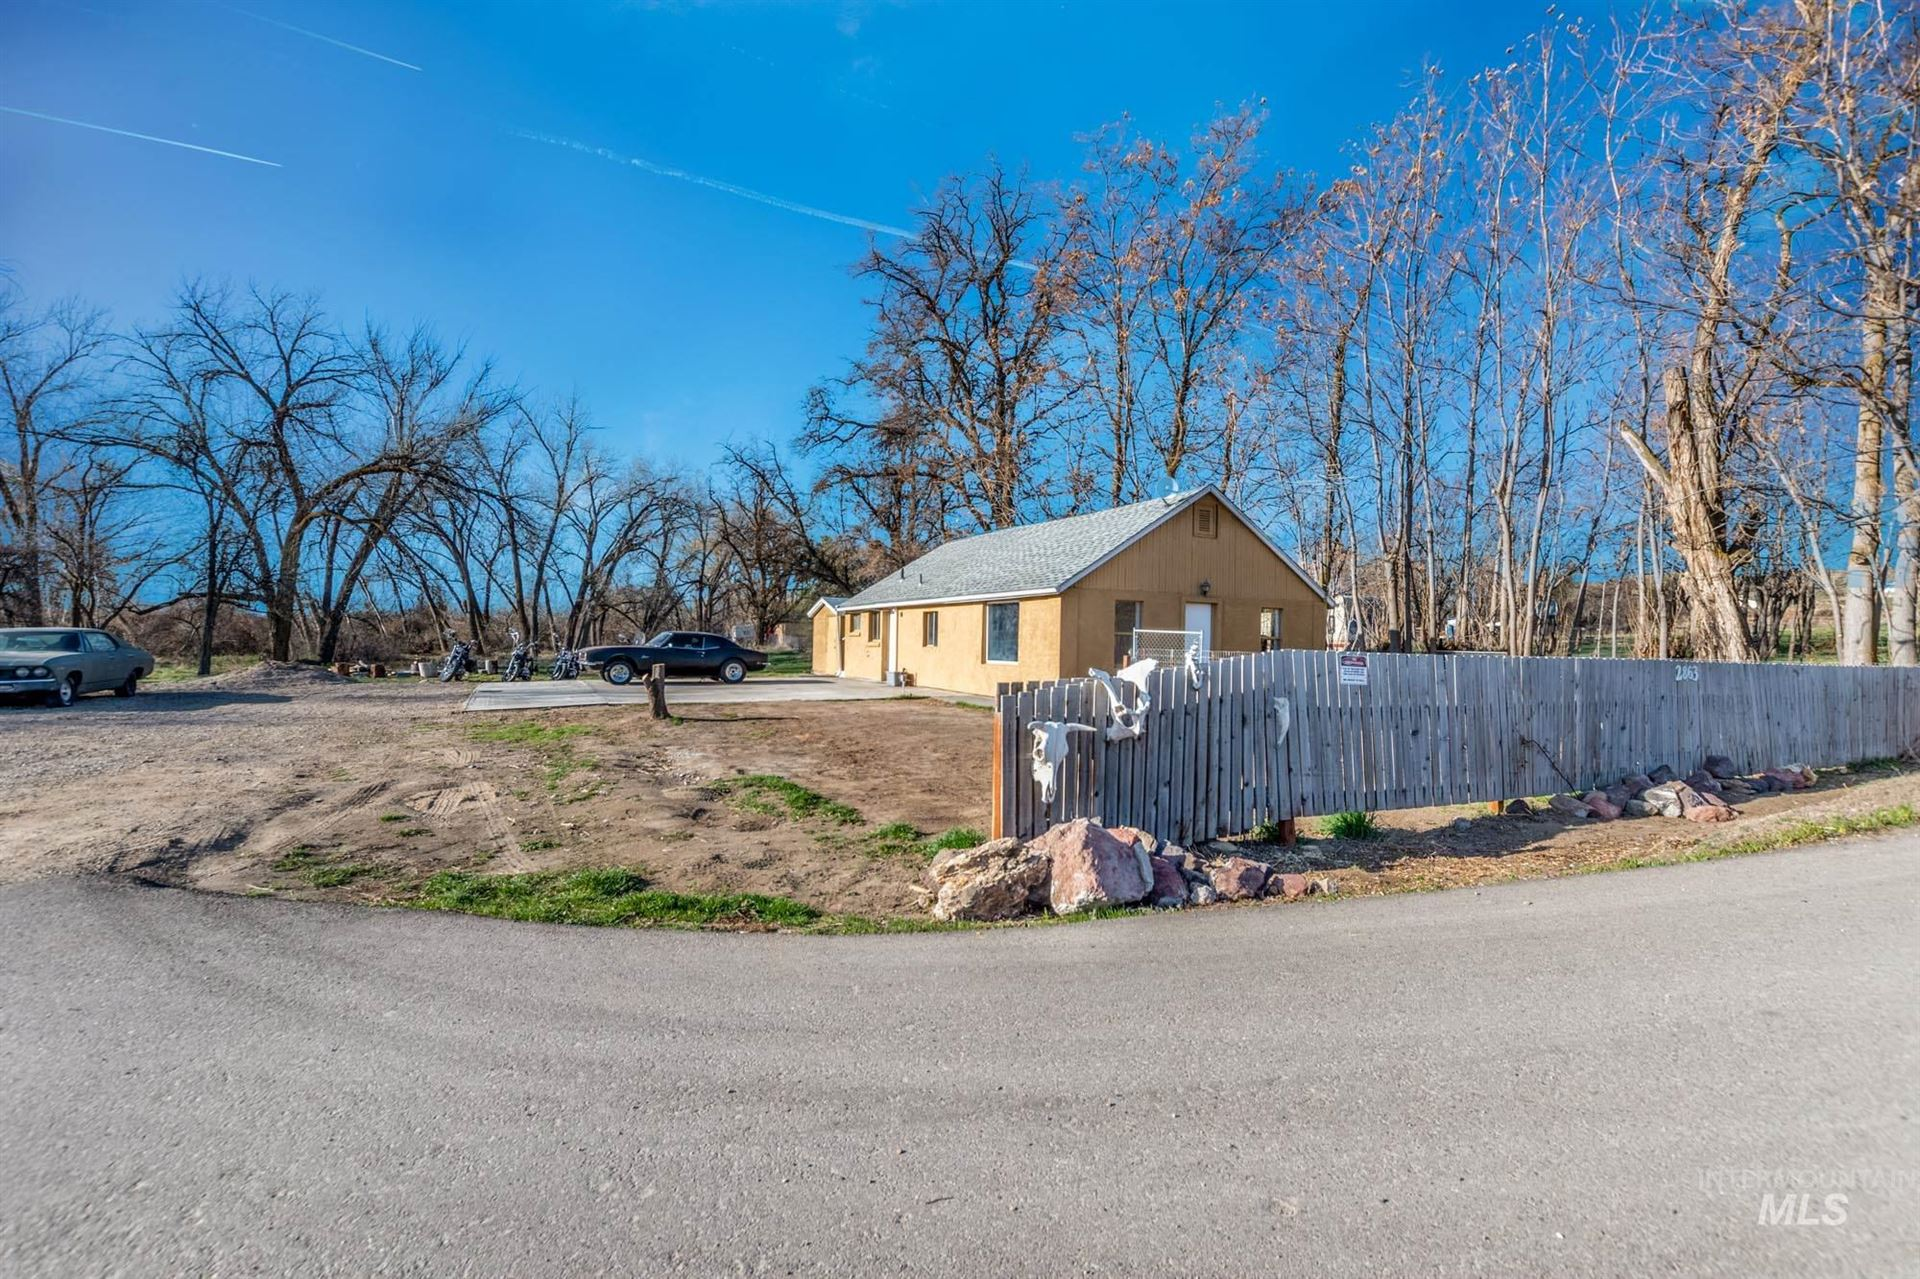 Photo of 2863 State Hwy 19, Homedale, ID 83628 (MLS # 98798705)